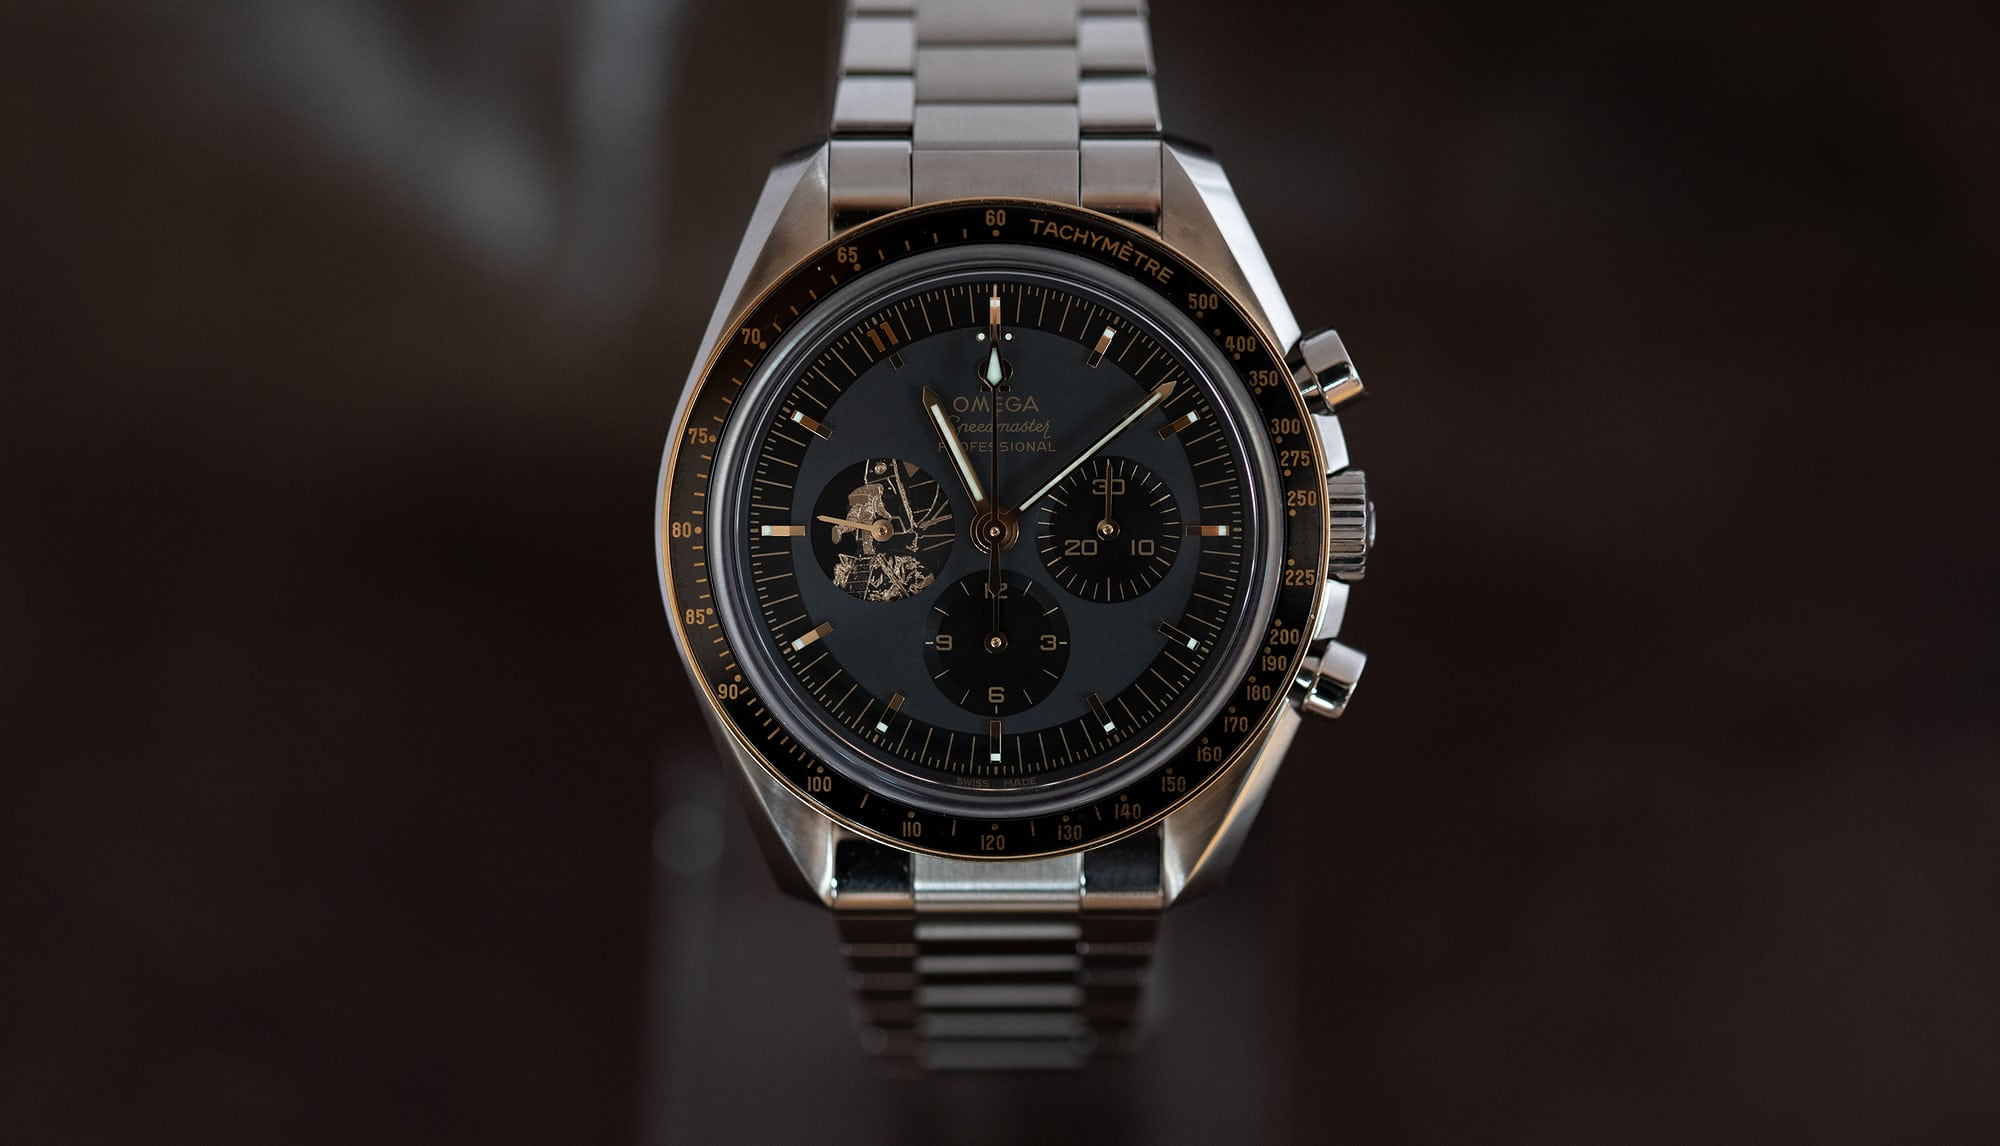 In-Depth: Some Personal Thoughts On The Omega Speedmaster Apollo 11 50th Anniversary Limited Edition